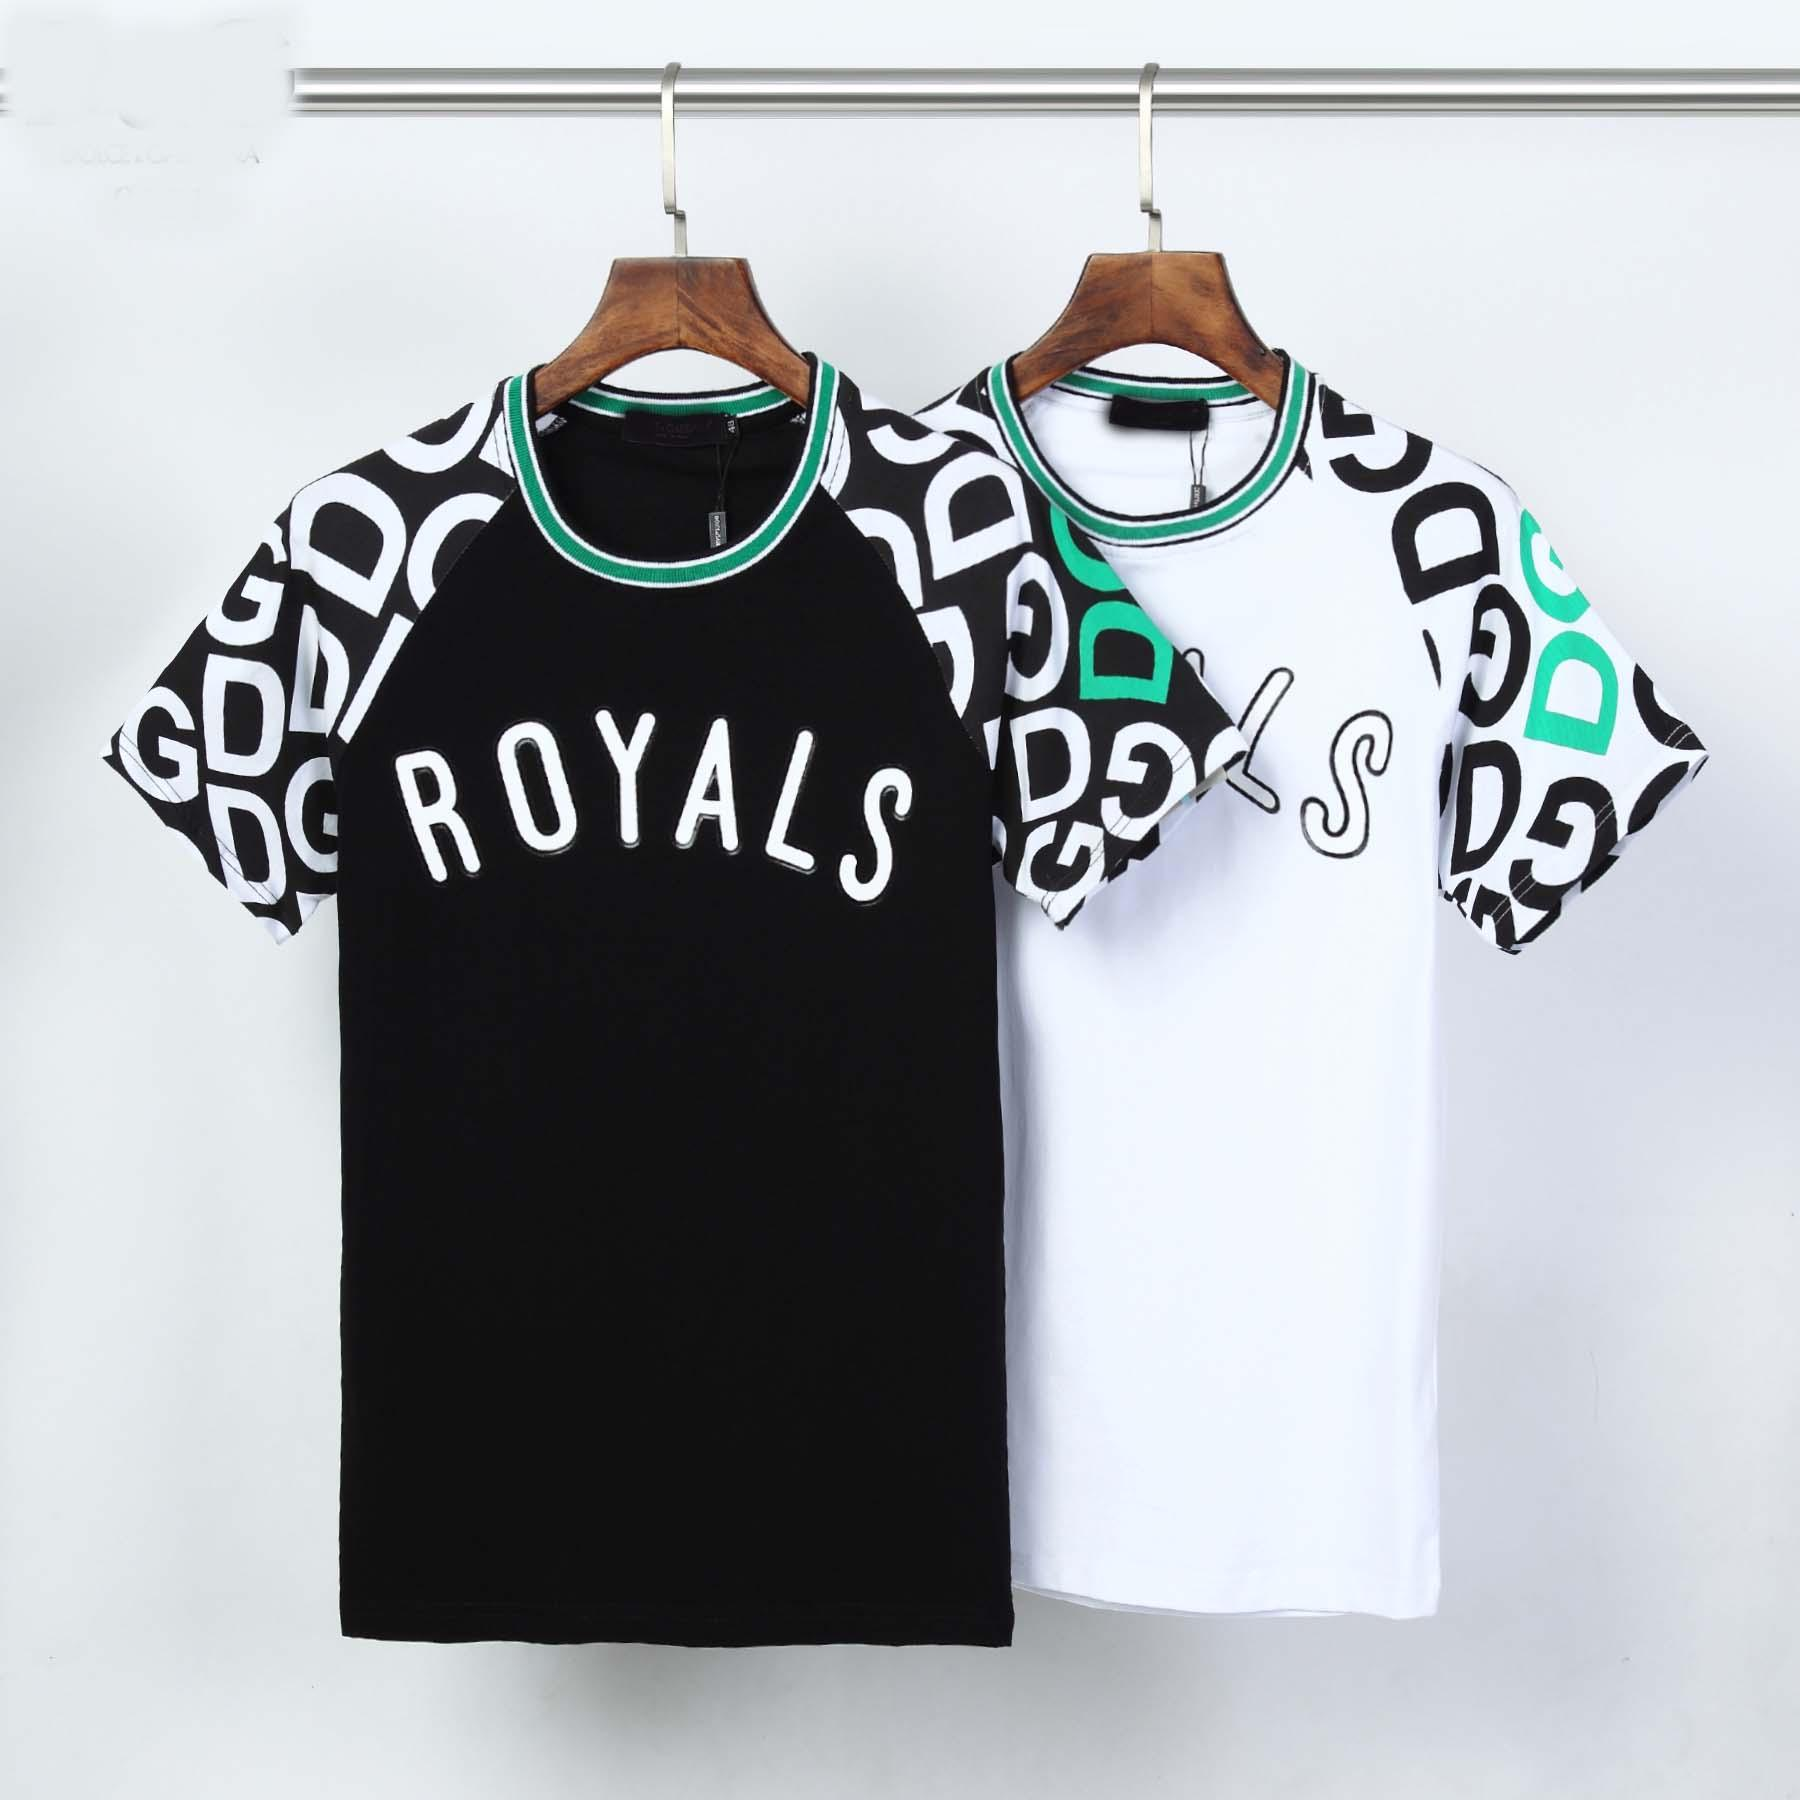 2020ss Hip-hop men's fashion high-quality Medusa printed T-shirt men's and women's summer short-sleeved T-shirt 2 styles.